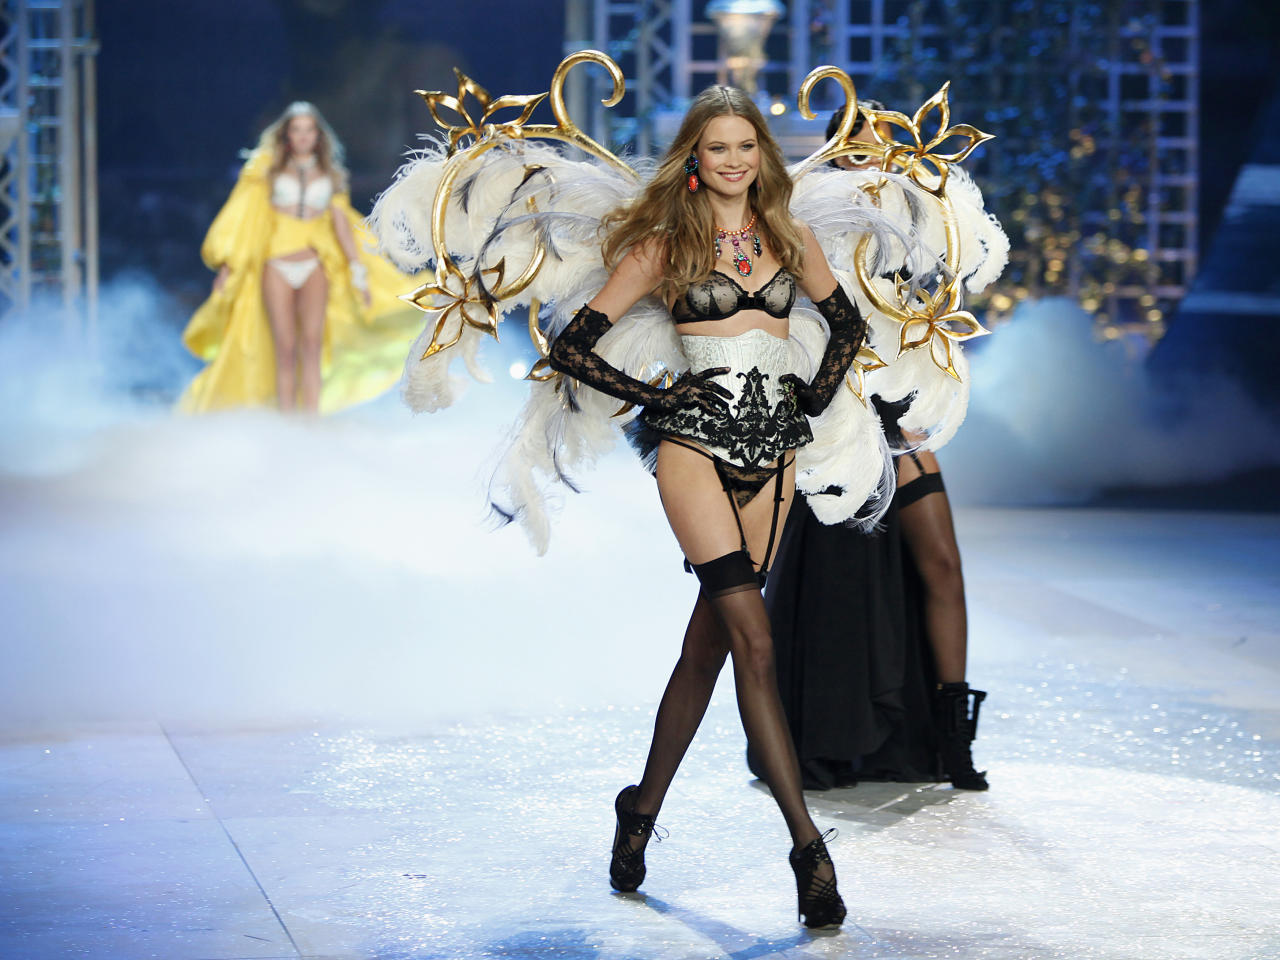 A model presents a creation during the Victoria's Secret Fashion Show in New York November 7, 2012. REUTERS/Carlo Allegri  (UNITED STATES - Tags: FASHION)